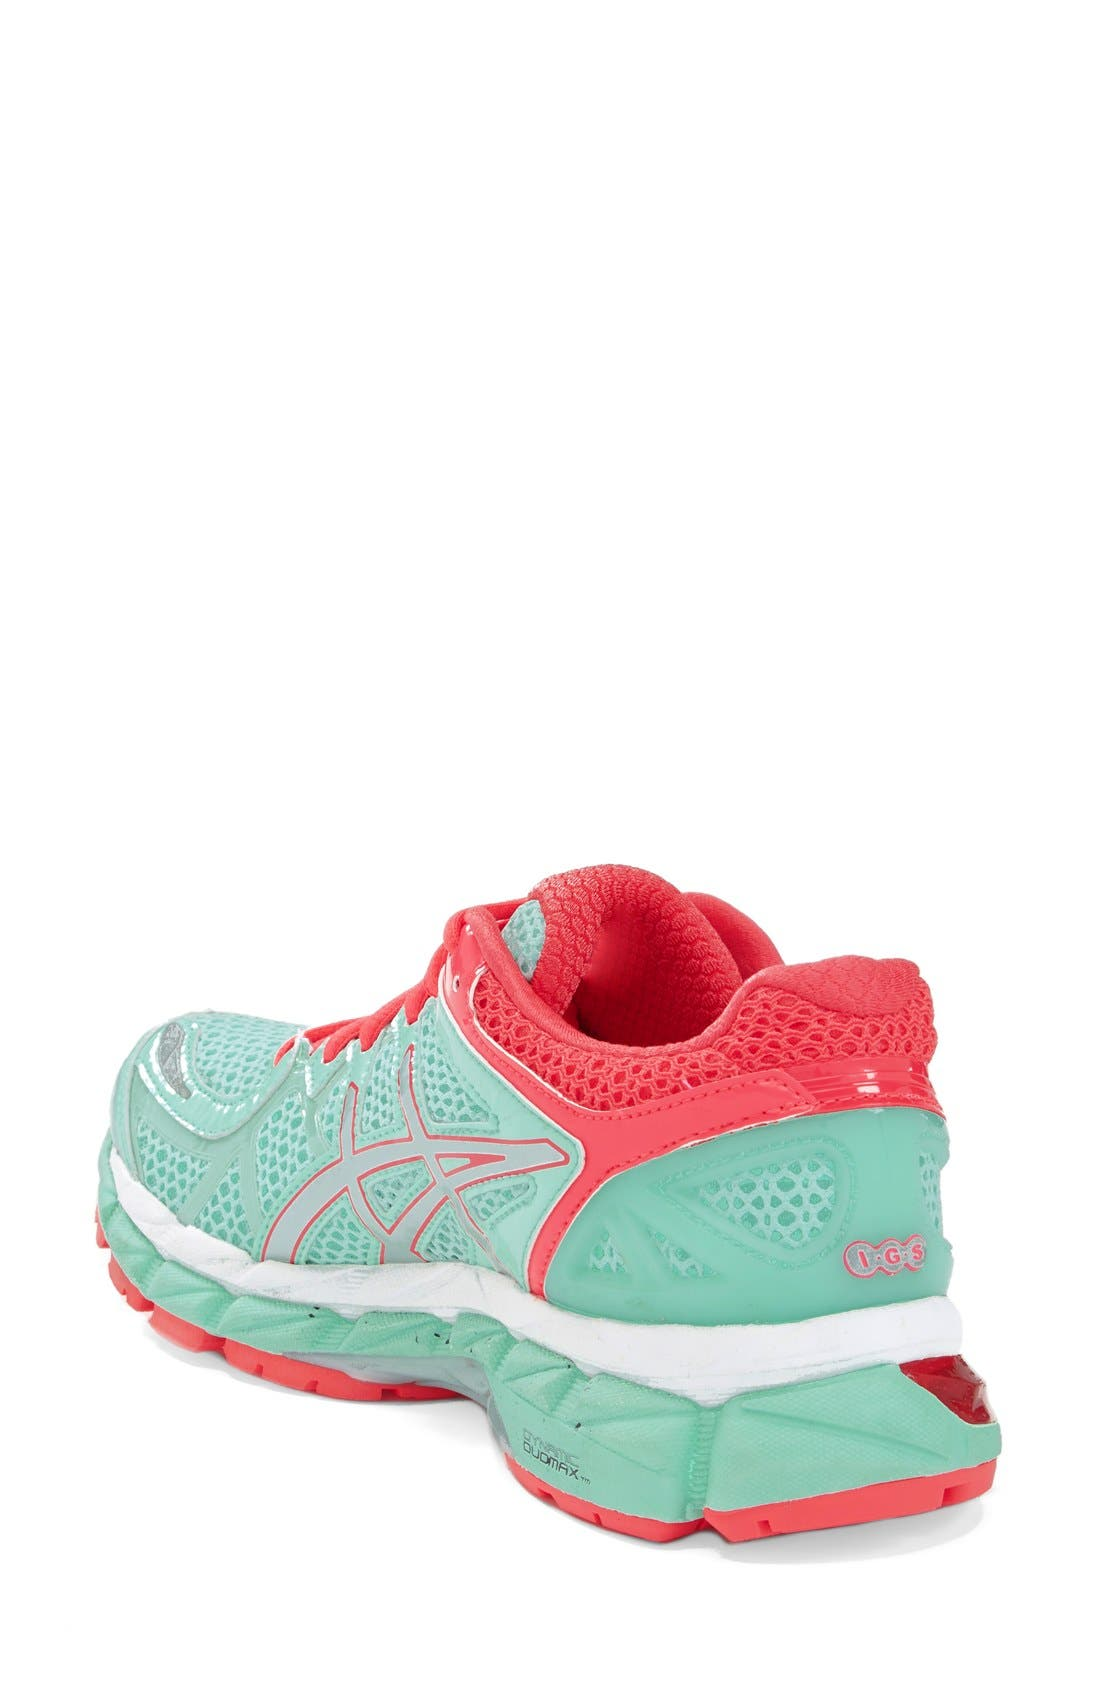 Alternate Image 2  - ASICS® 'GEL-Kayano 21' Running Shoe (Women)(Regular Retail Price: $159.95)